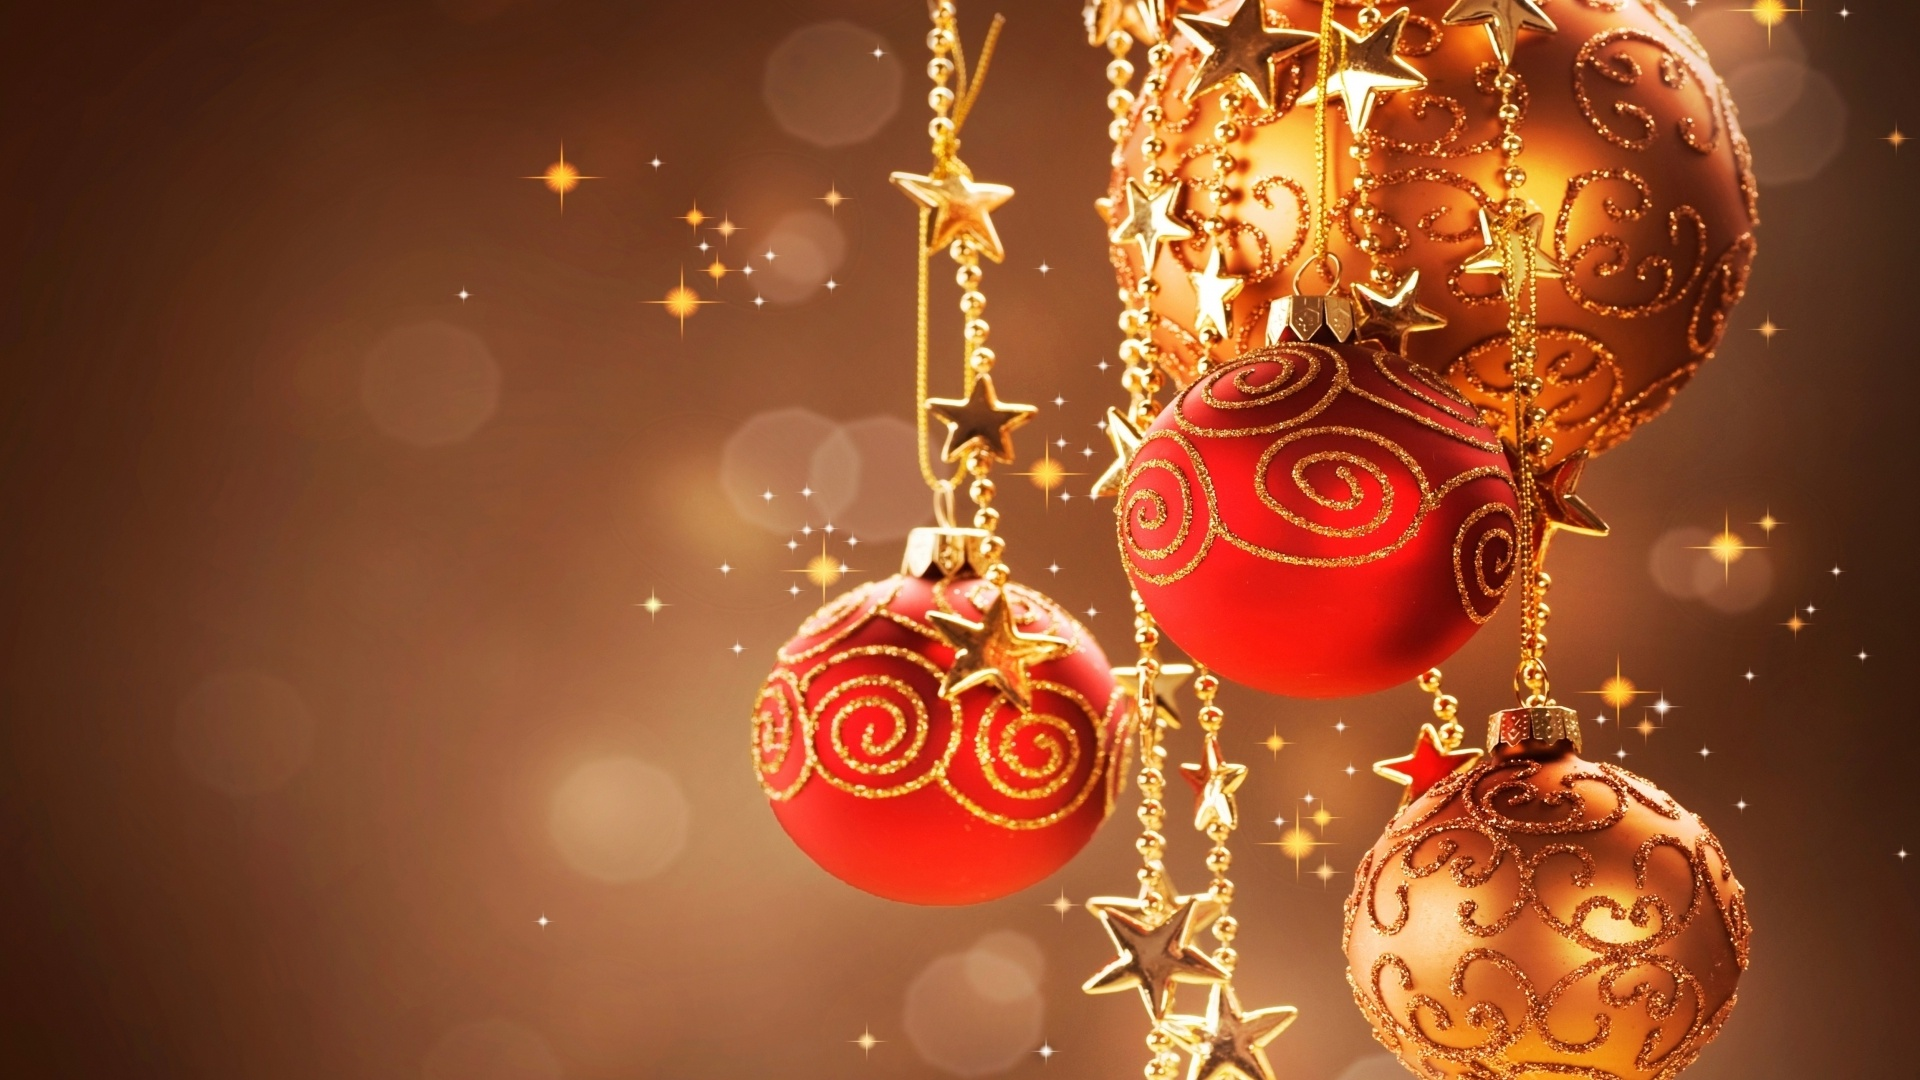 christmas-screen-themes-Google-Search-wallpaper-wpc5803471